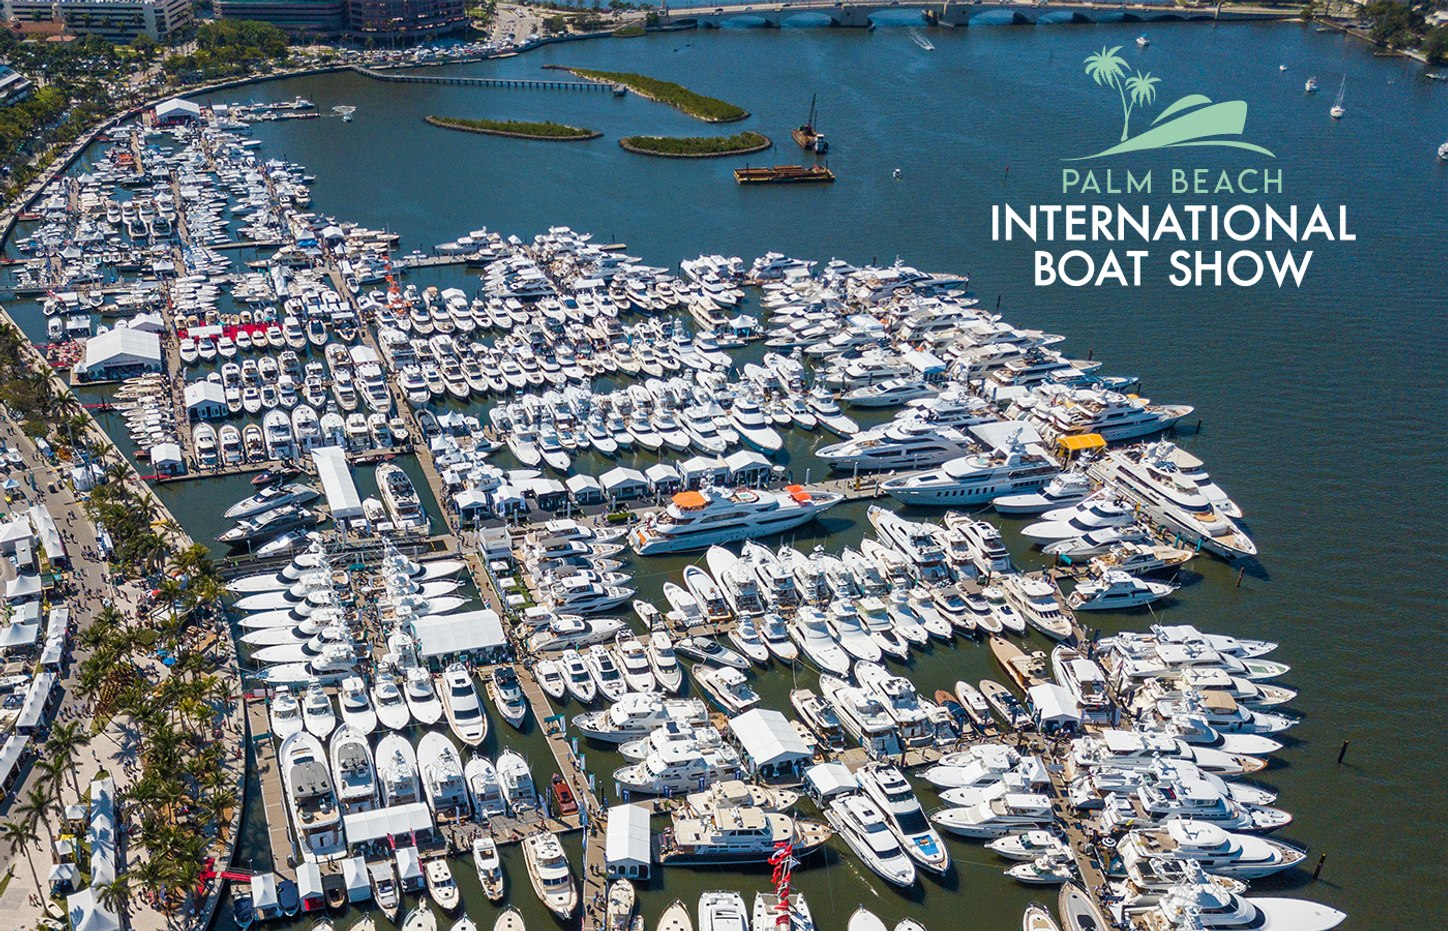 Aerial shot of Palm Beach International Boat Show